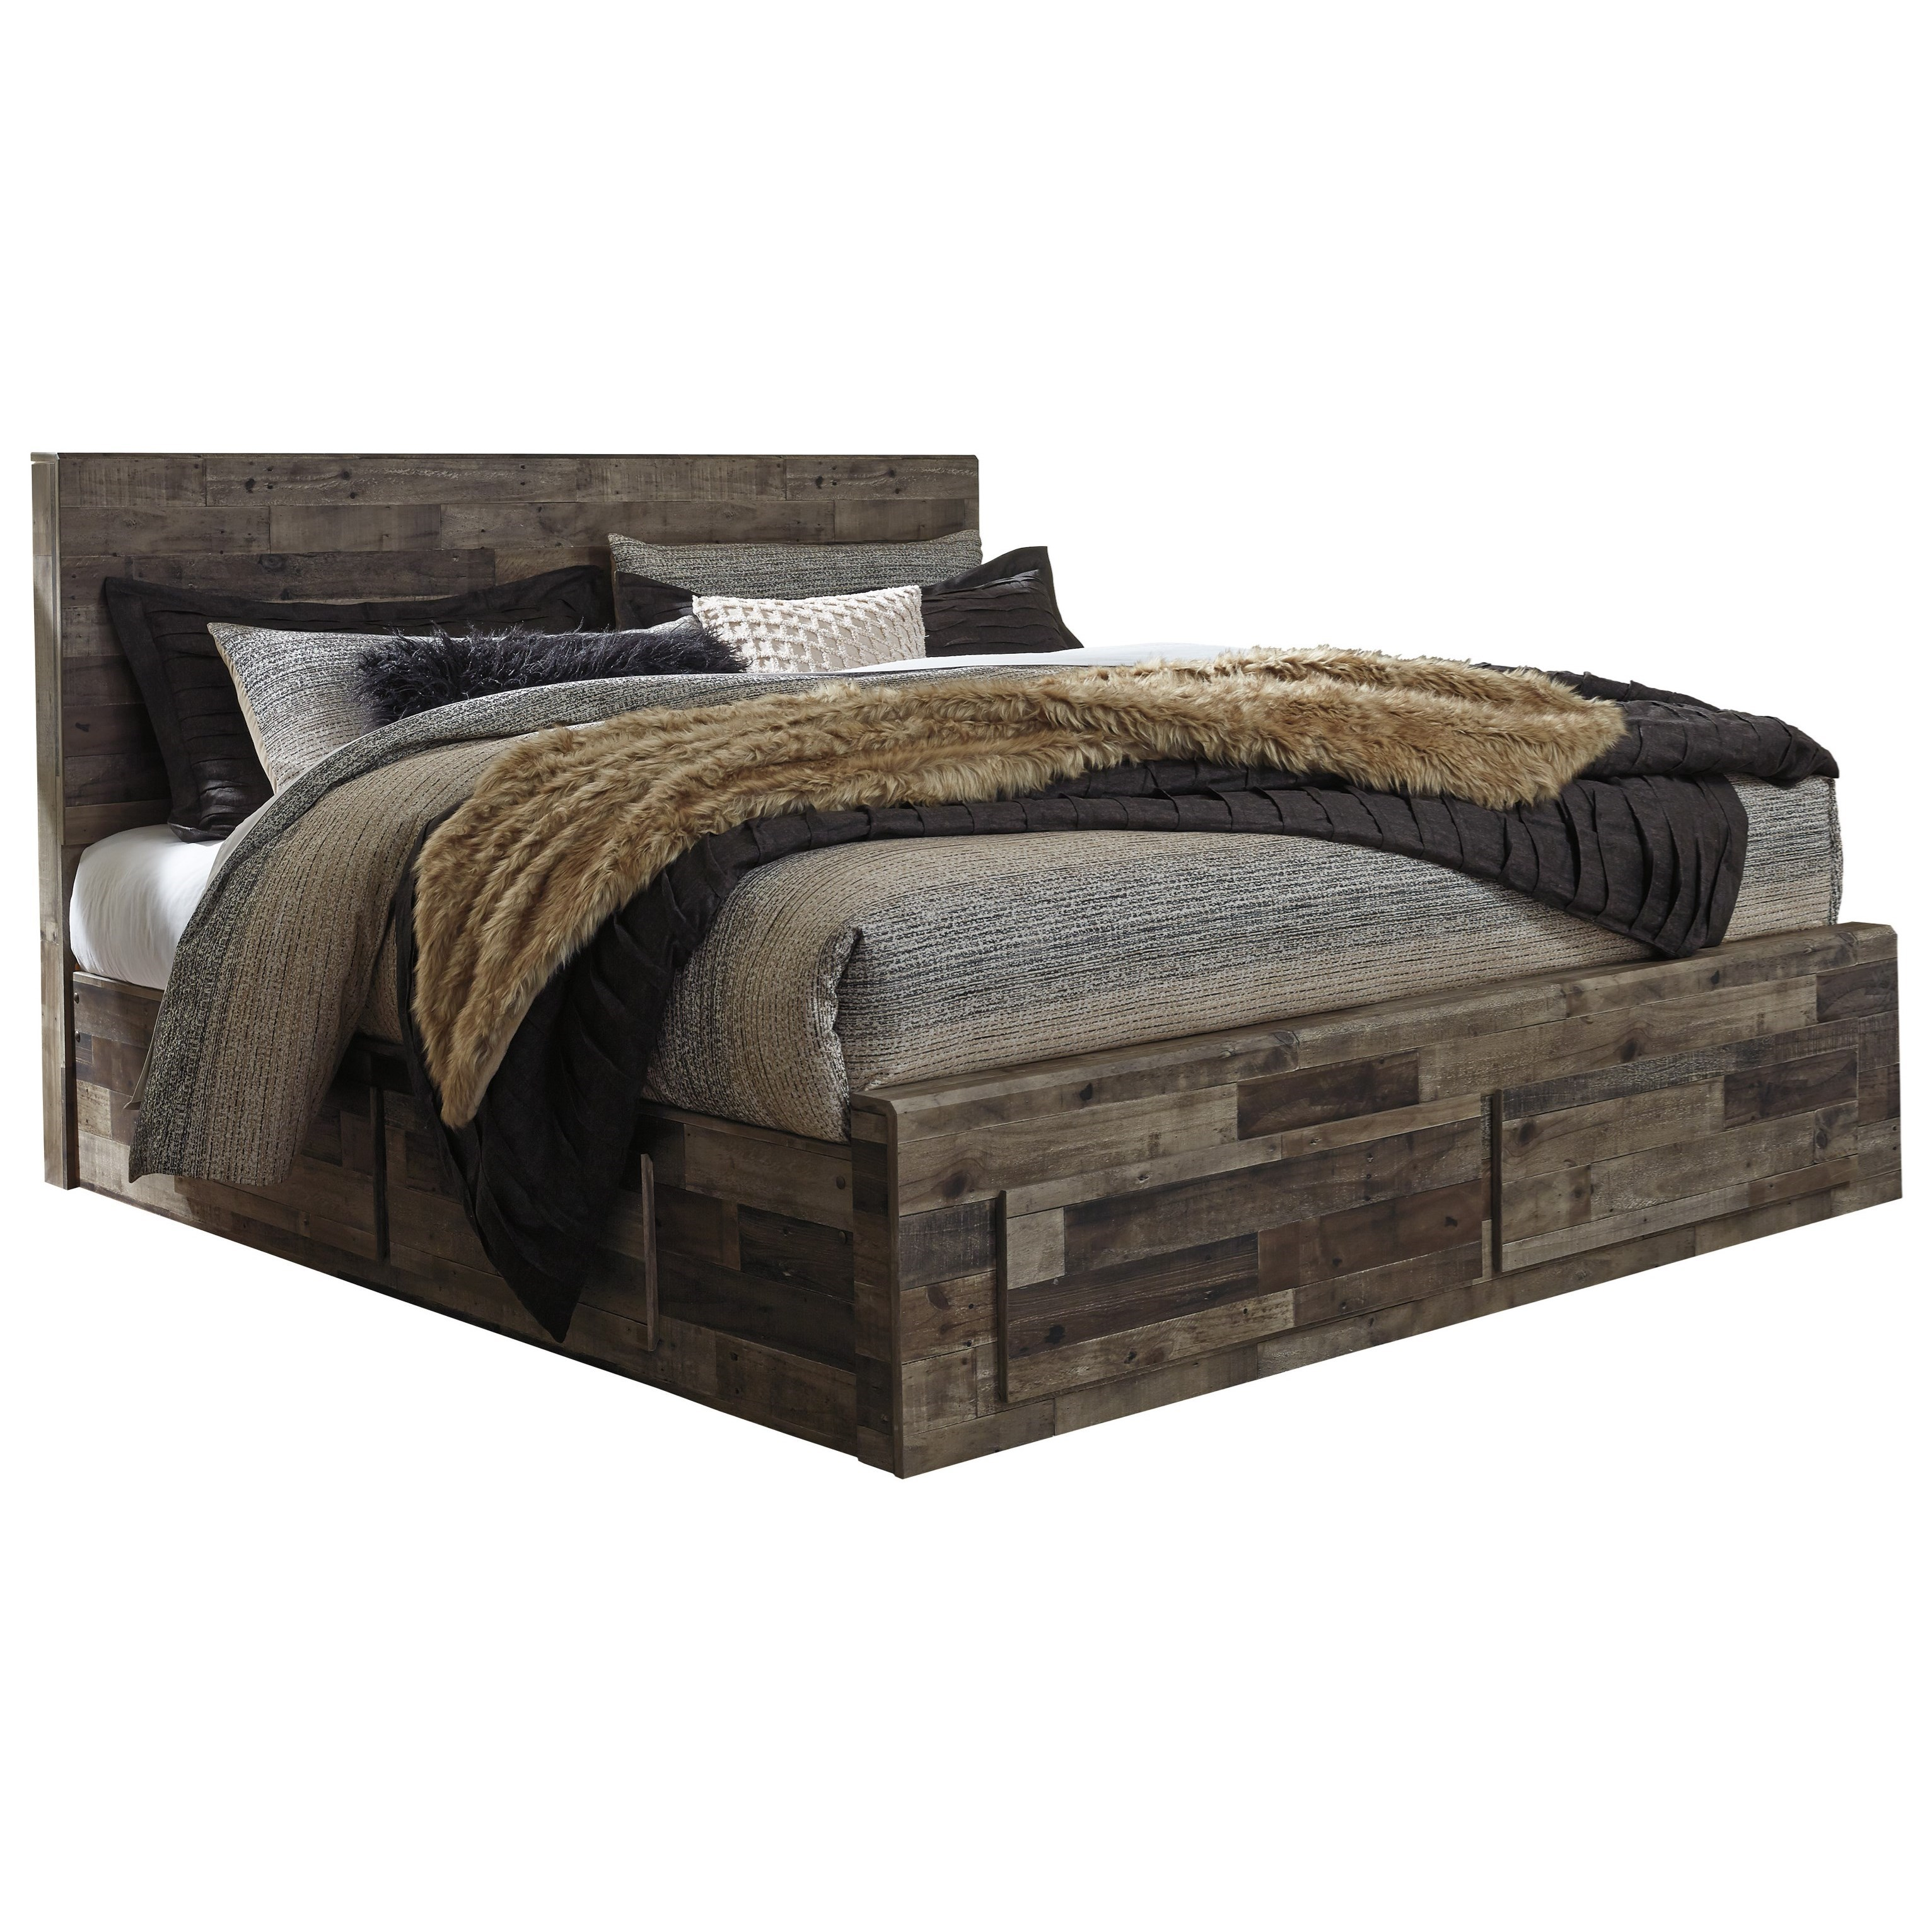 Derekson King Storage Bed with 6 Drawers by Benchcraft at Walker's Furniture